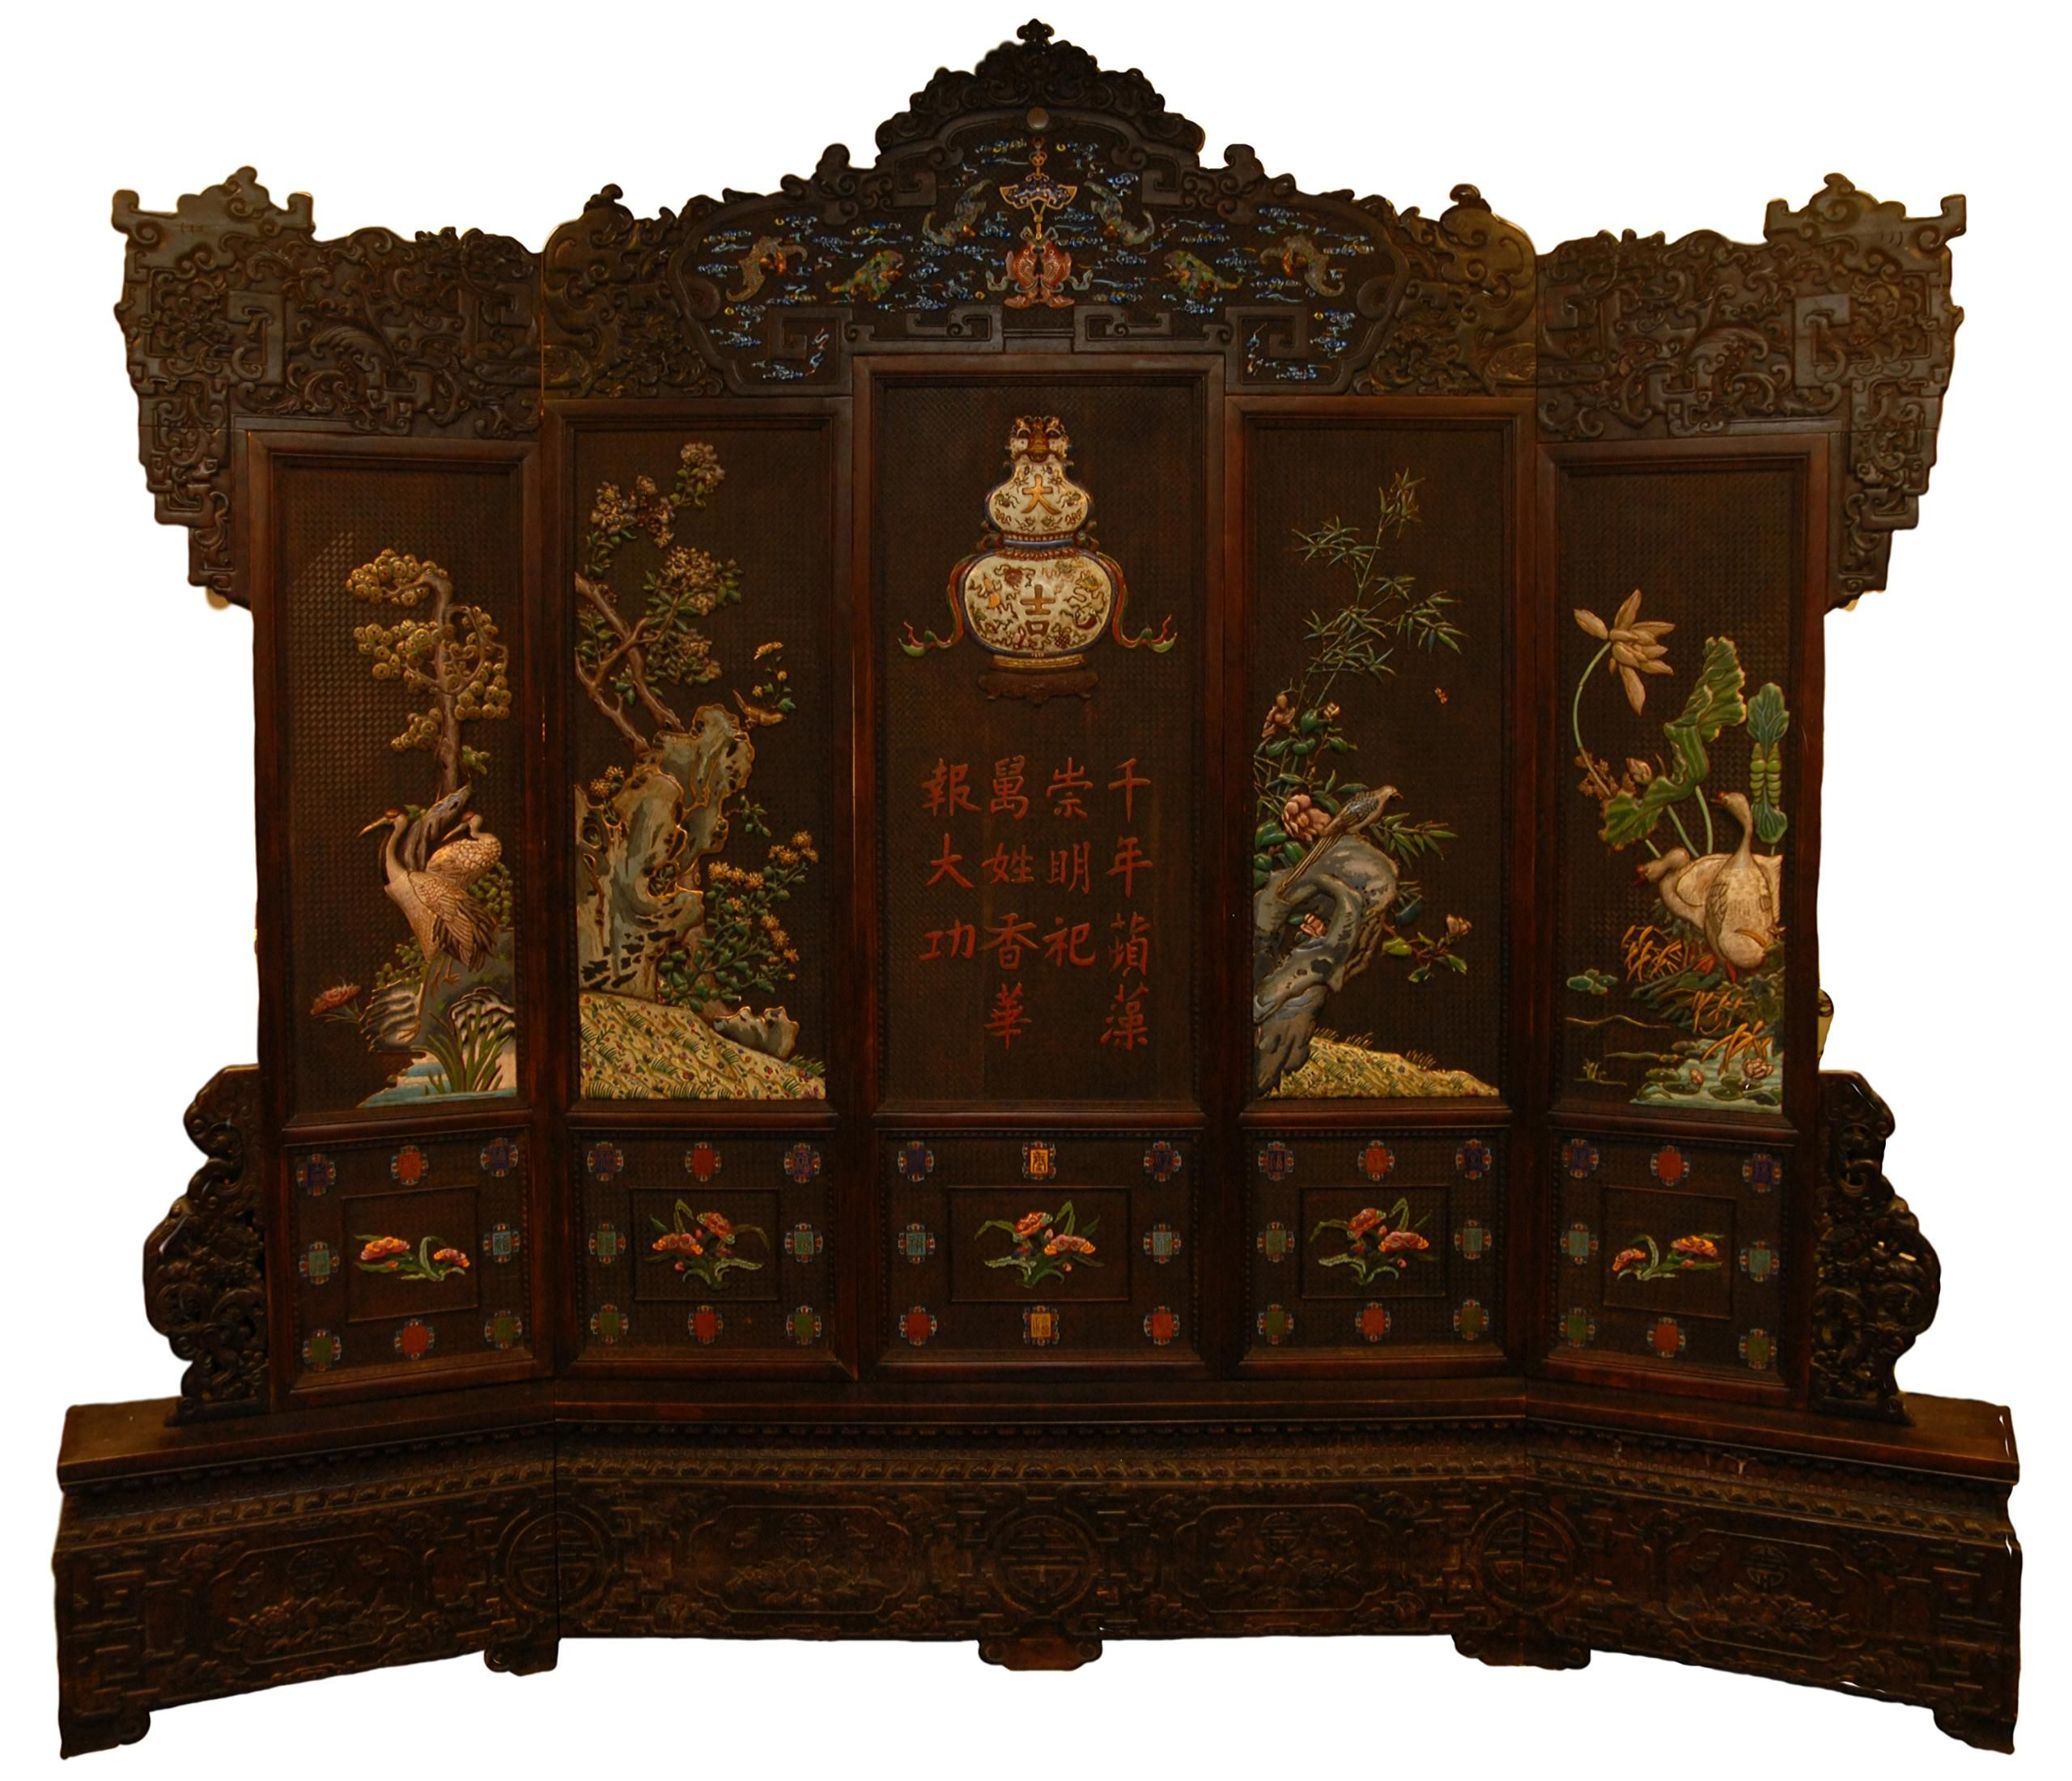 an 18th century chinese imperial throne 5 panel throne screen made